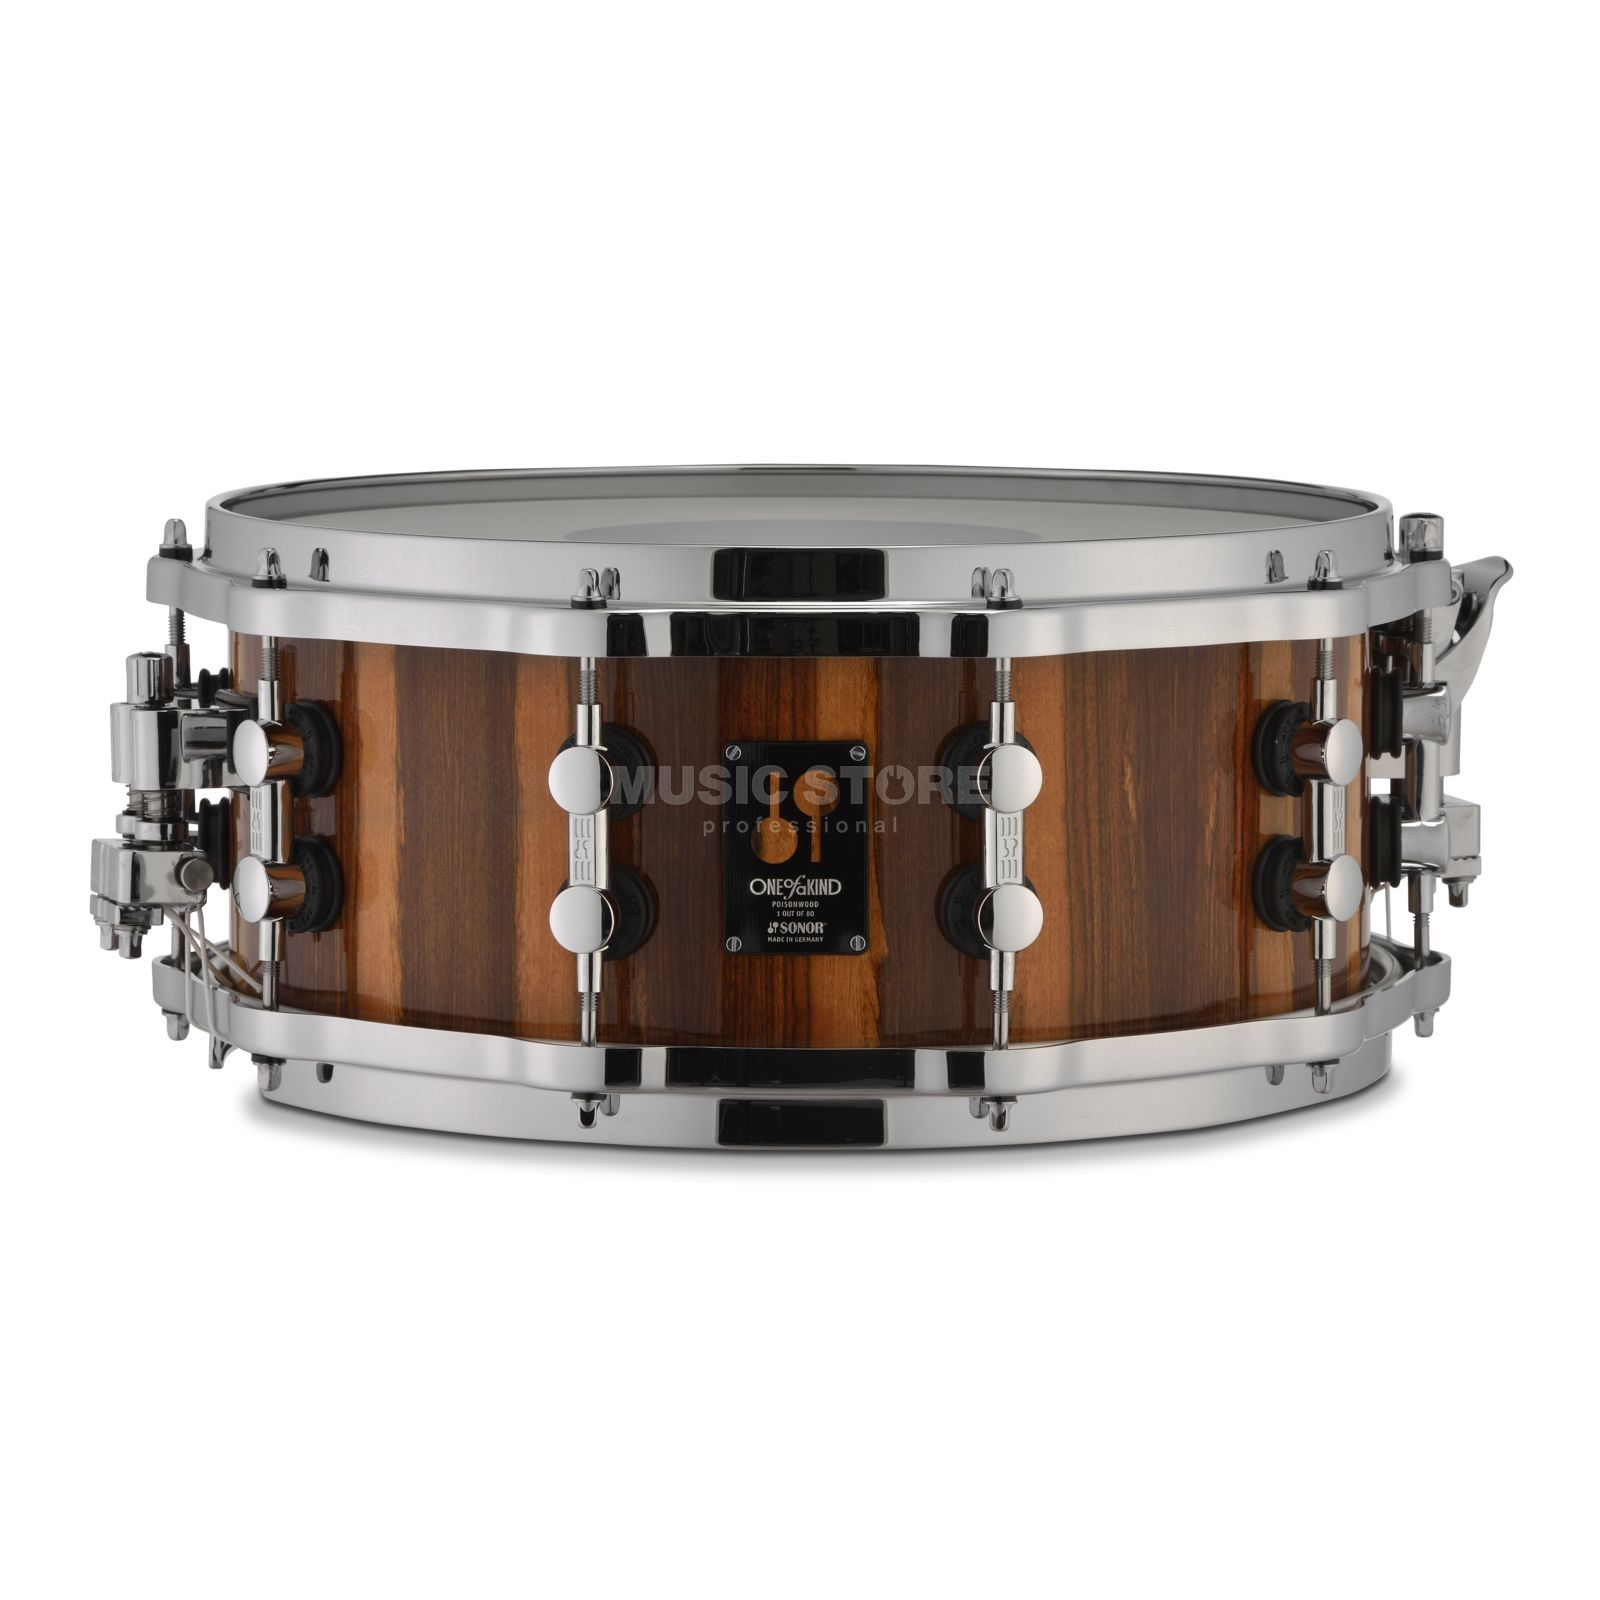 "Sonor One of a kind Snare 14""x6"", Poisonwood Produktbillede"